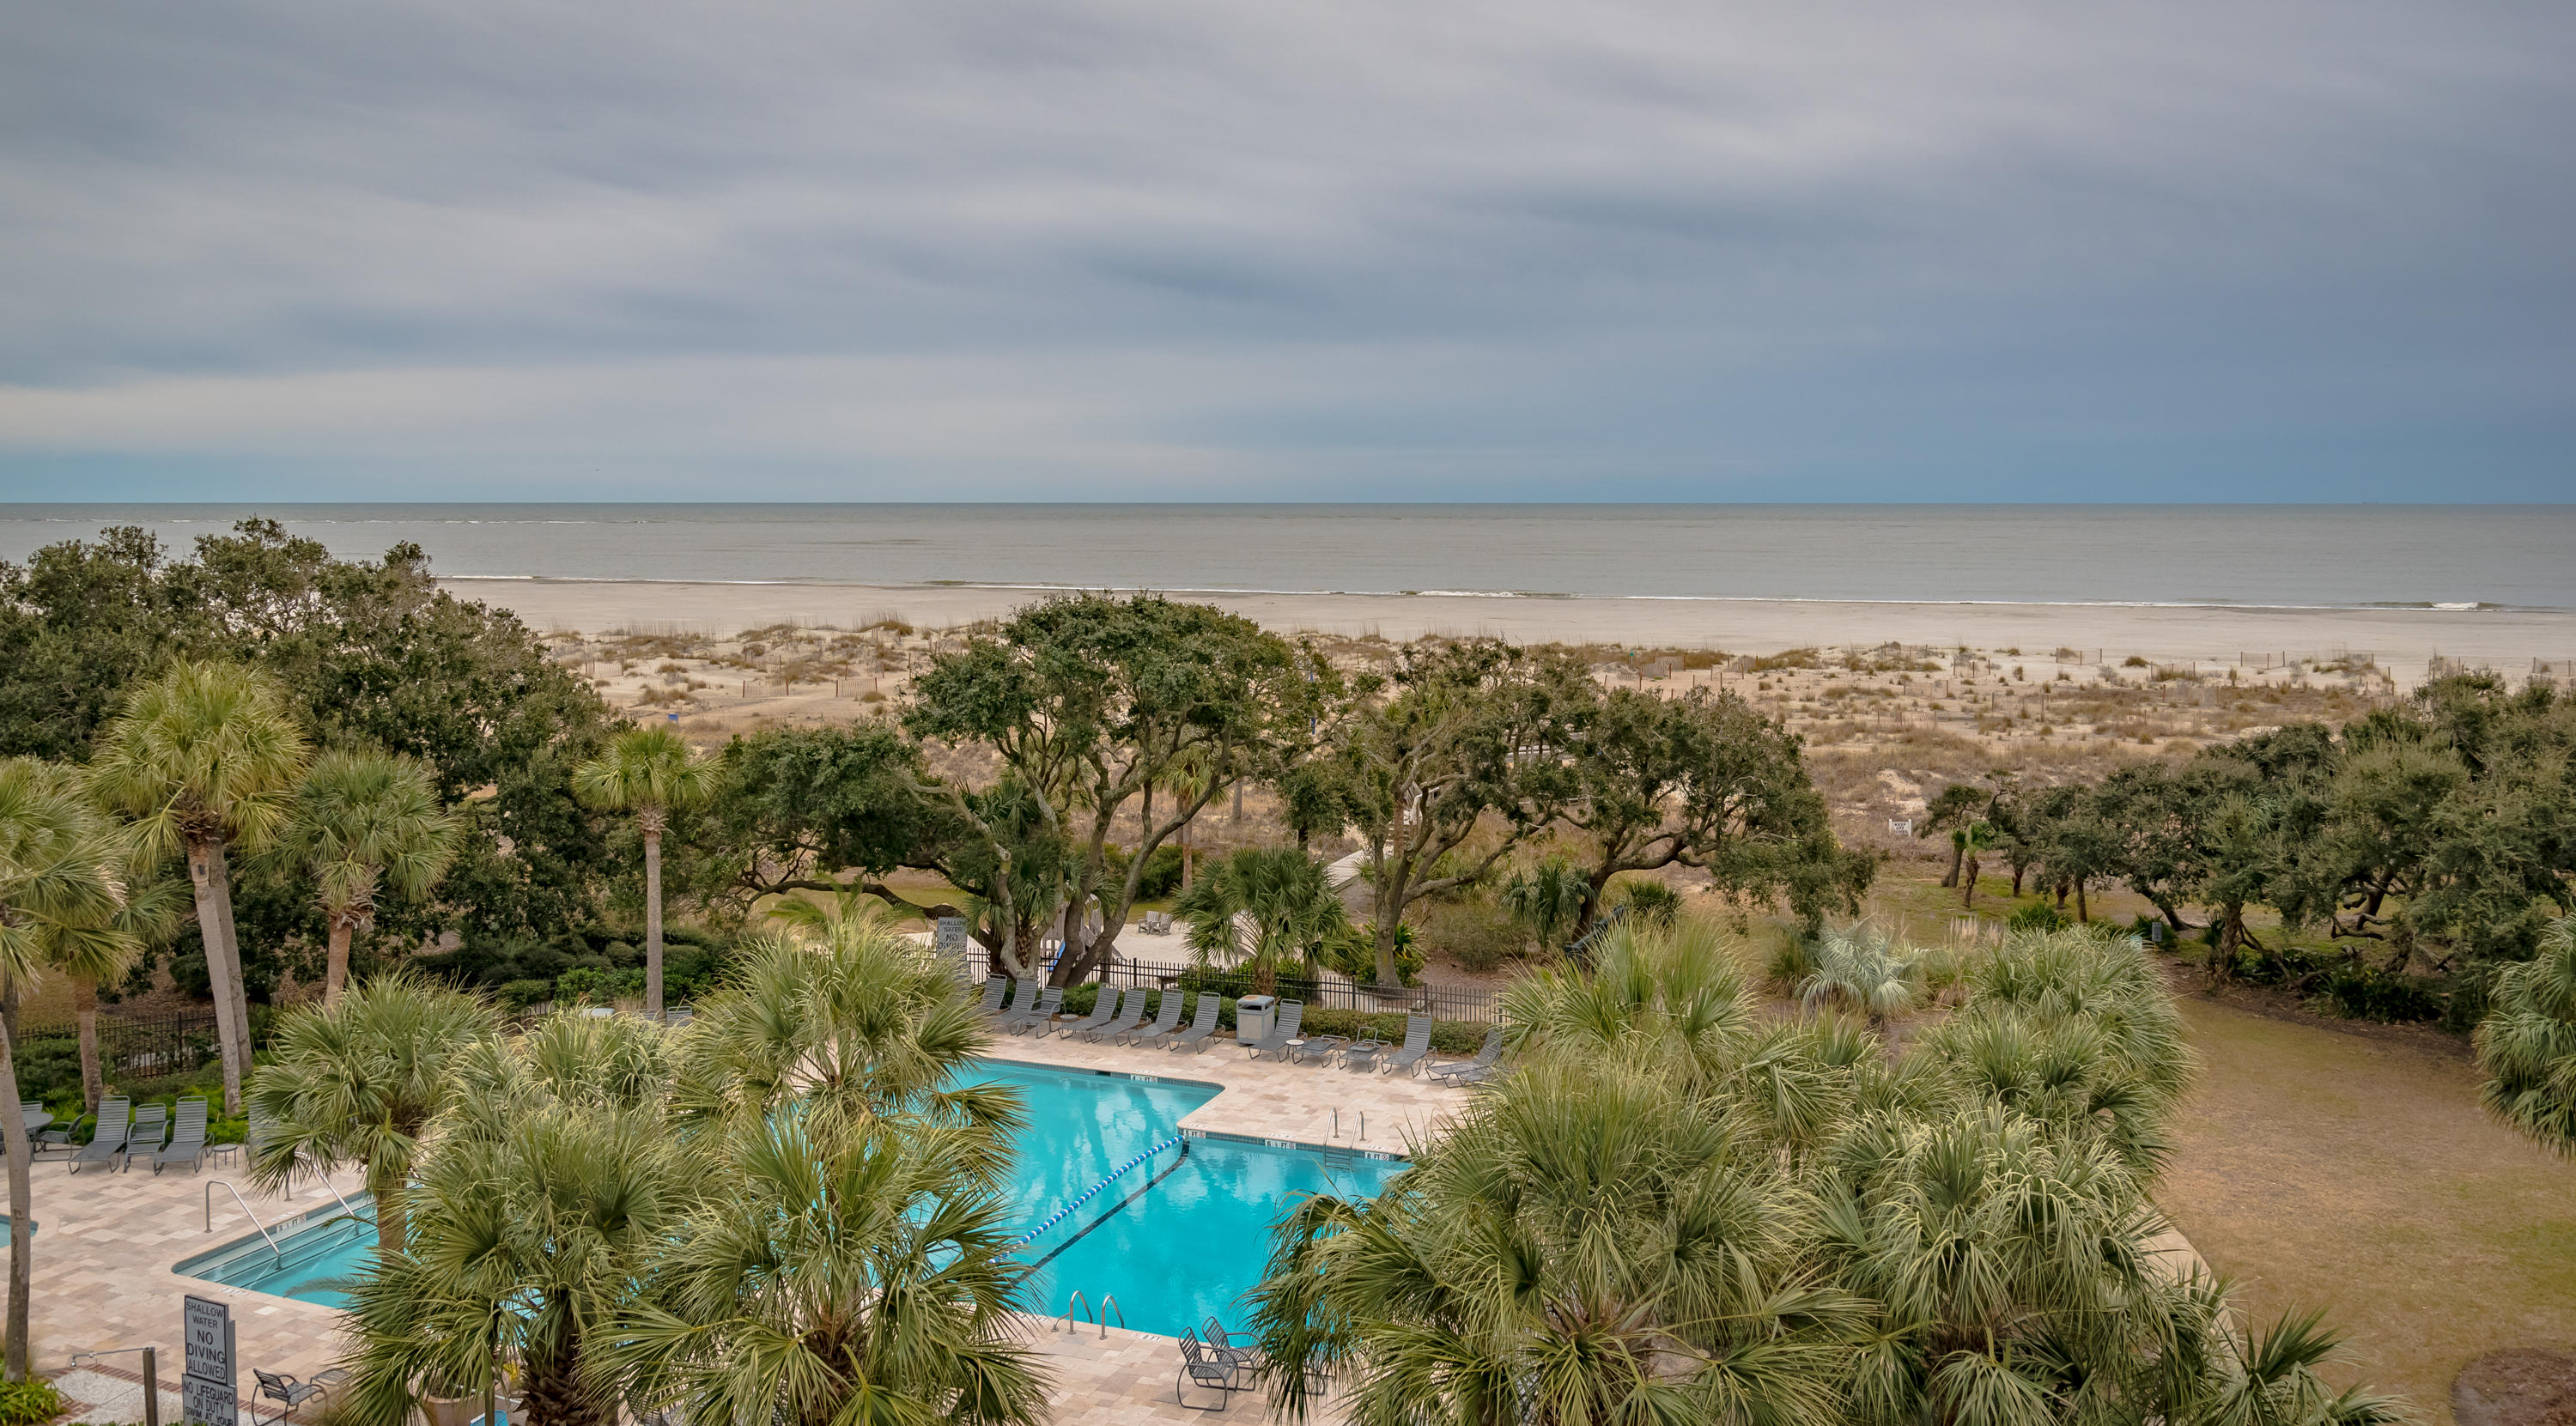 412 B Shipwatch Villas Isle Of Palms, SC 29451